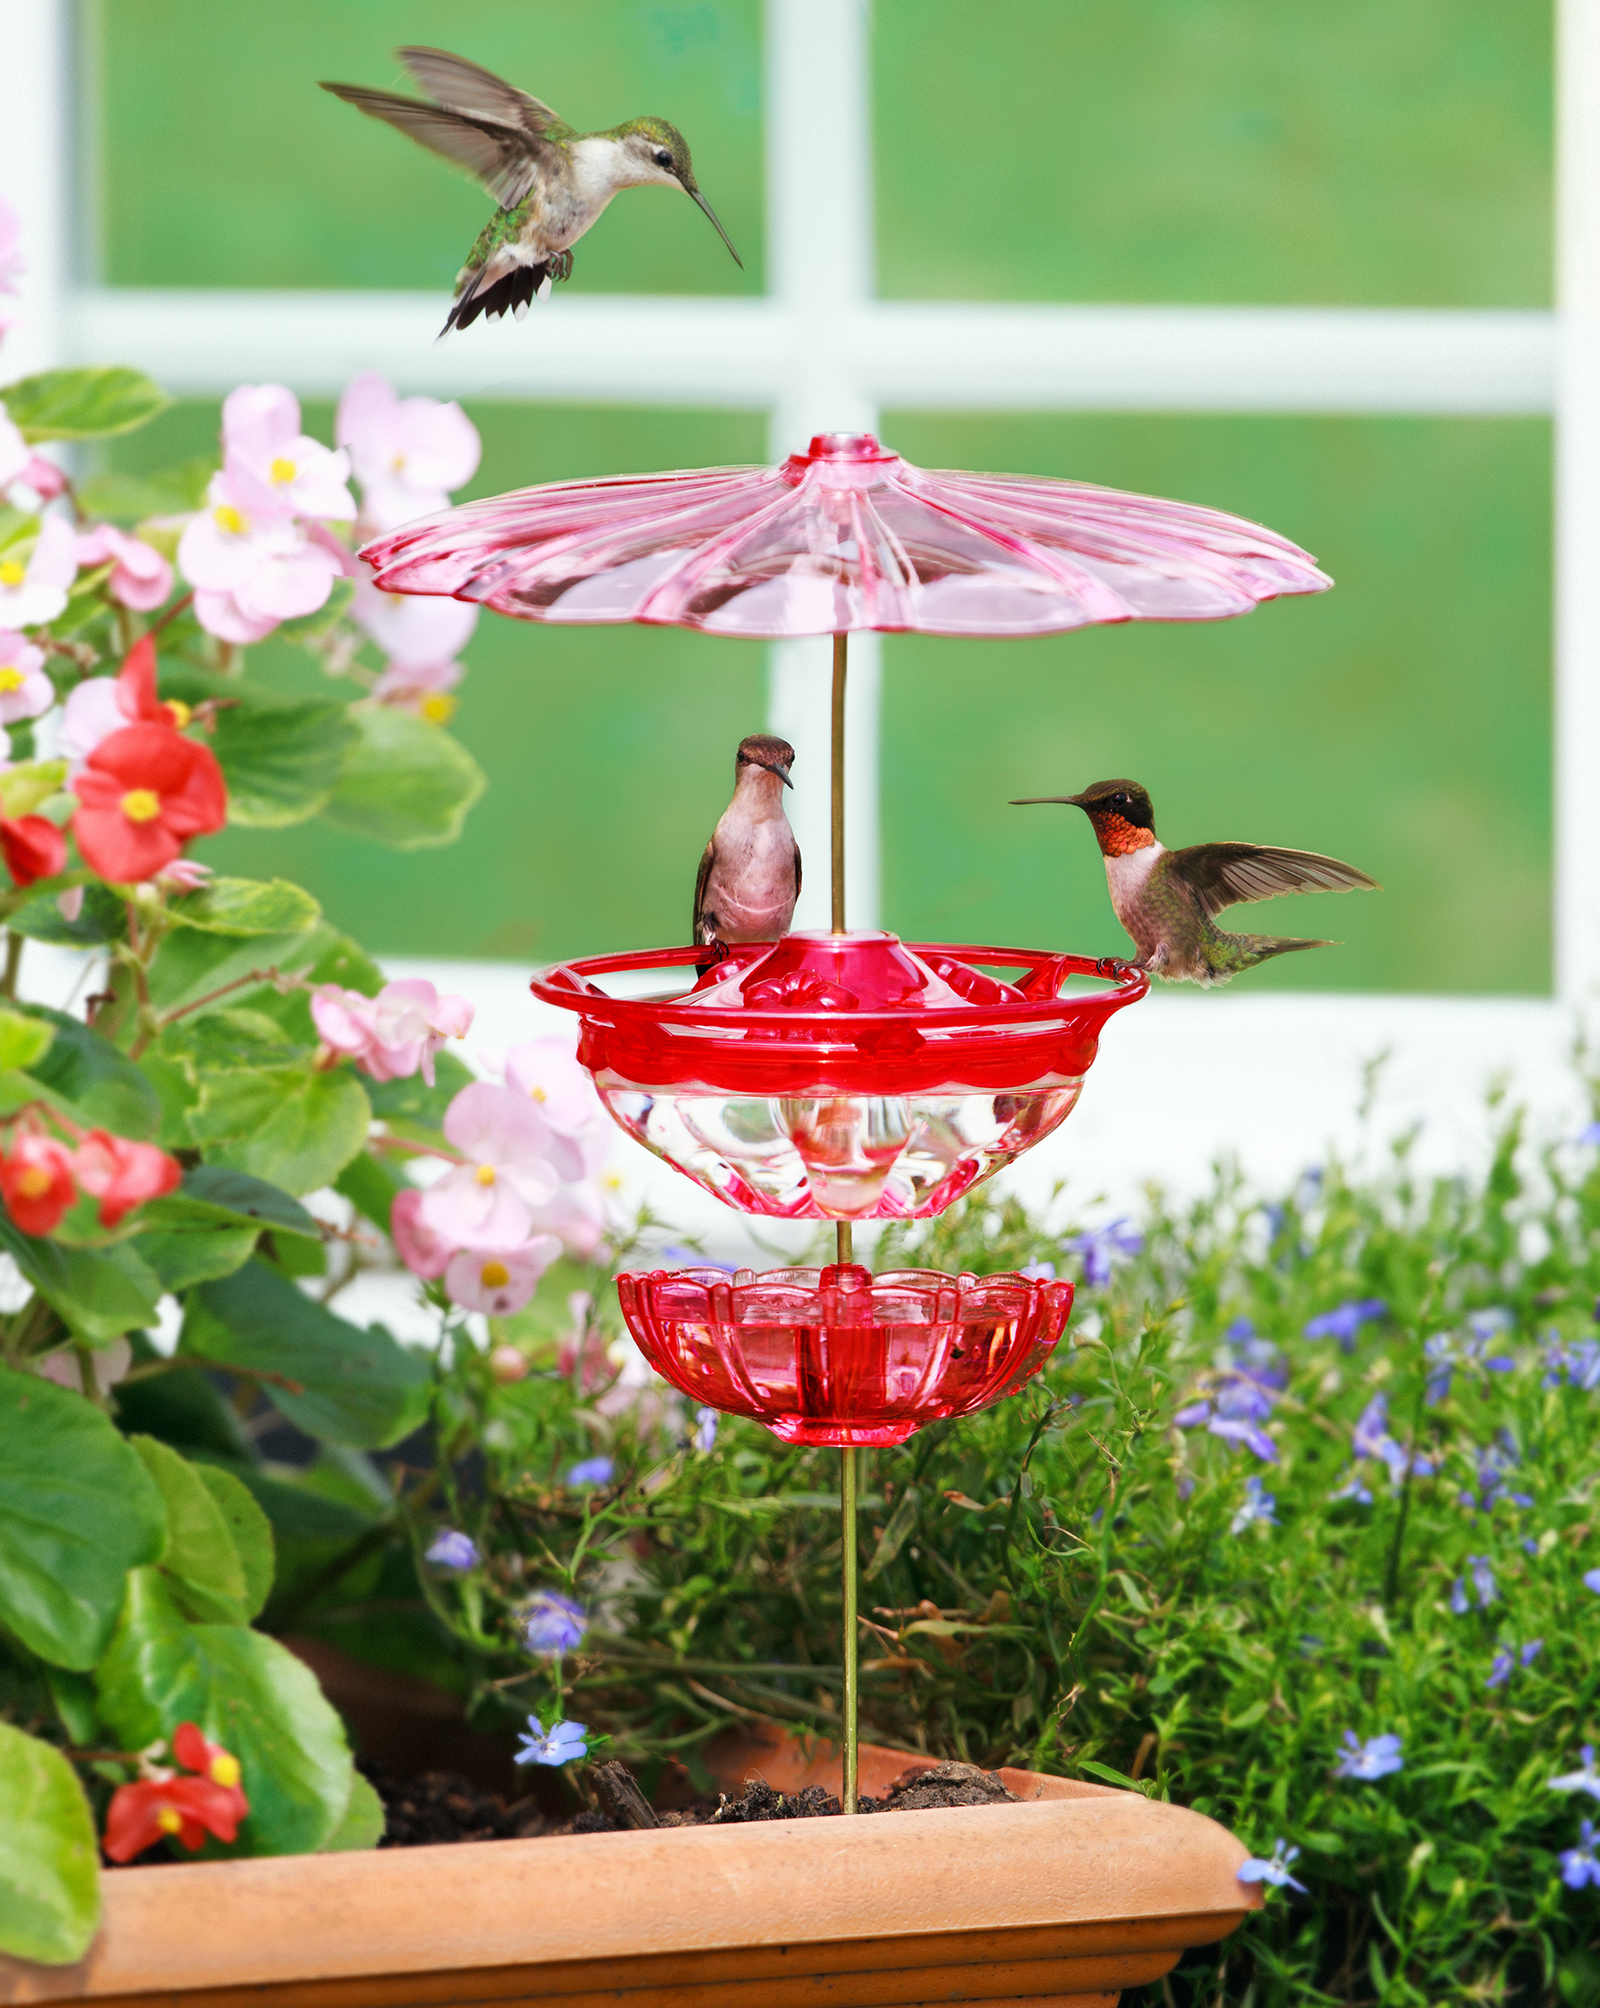 valley com cherry model mounted coach lamp garden pole outdoor feeders dp amazon pet bird feeder